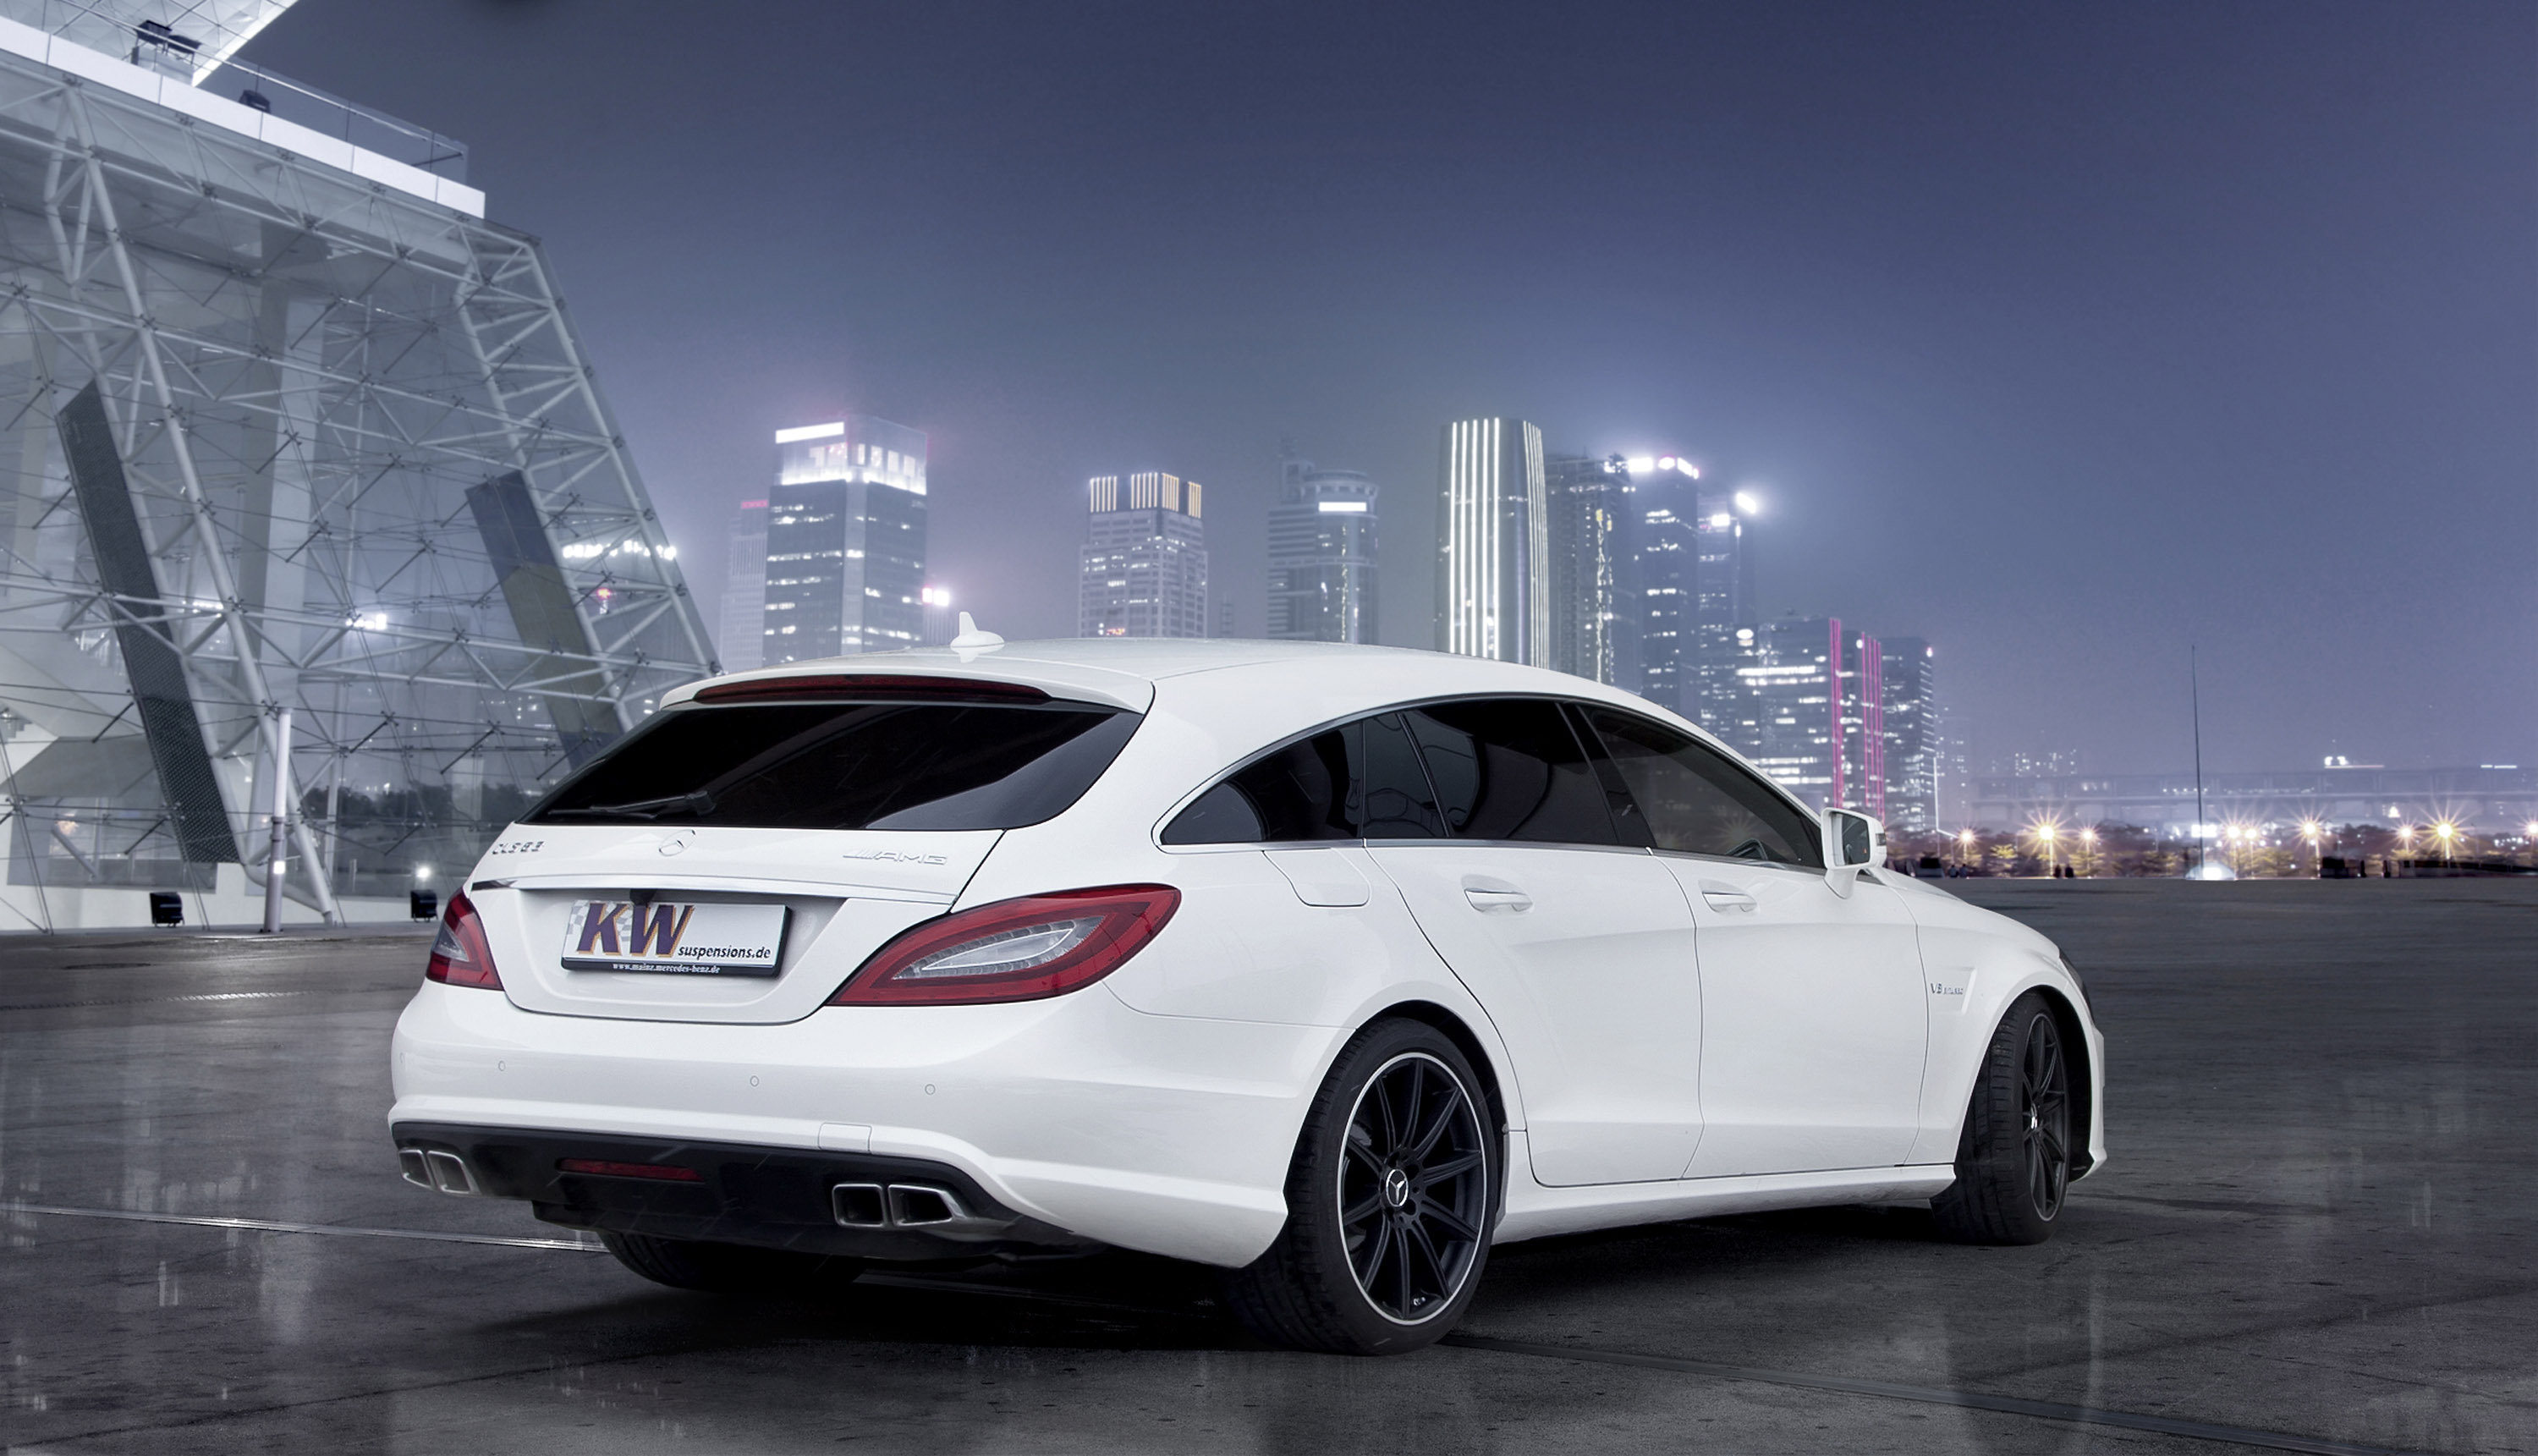 kw mercedesbenz cls 63 amg shooting brake picture 87007